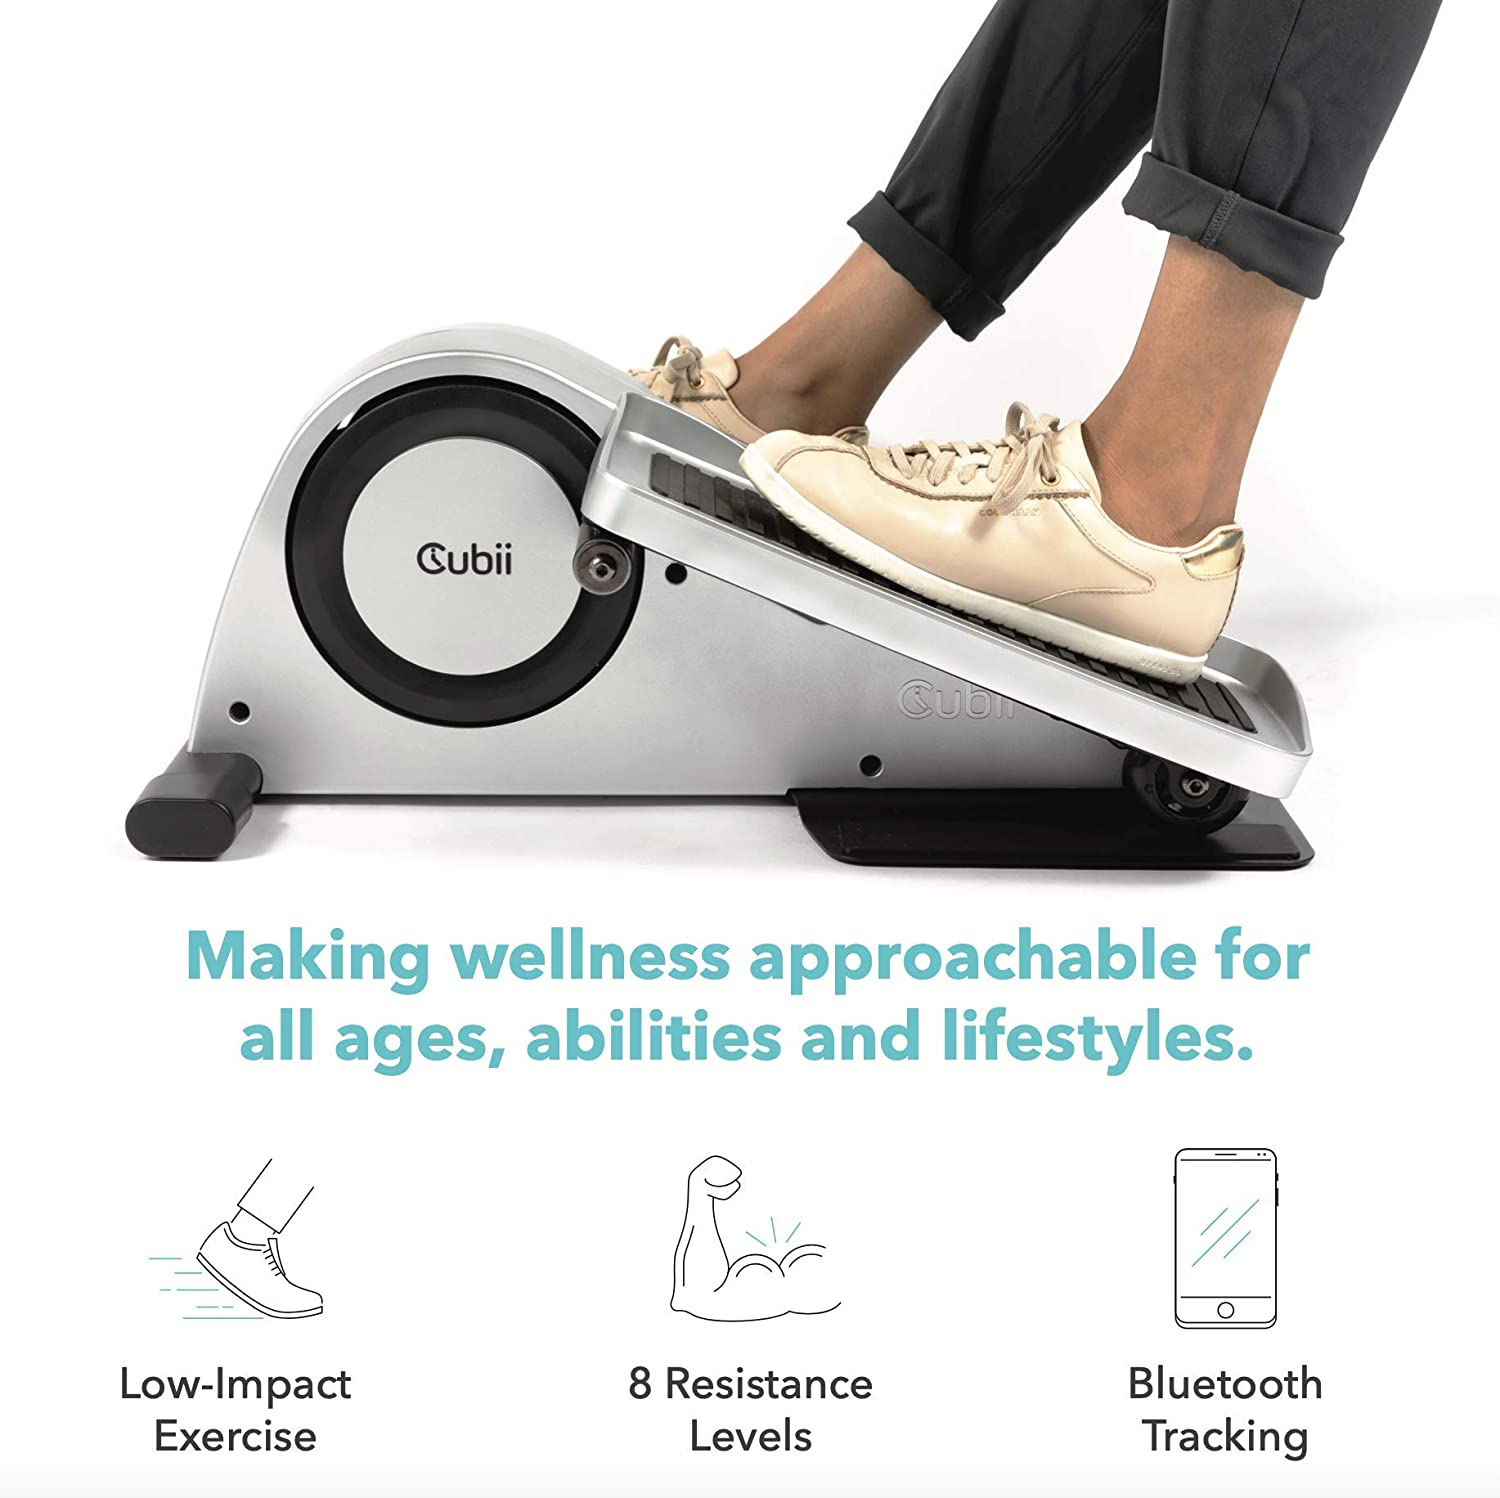 Cubii Pro Under Desk Elliptical Machine for Home Workout